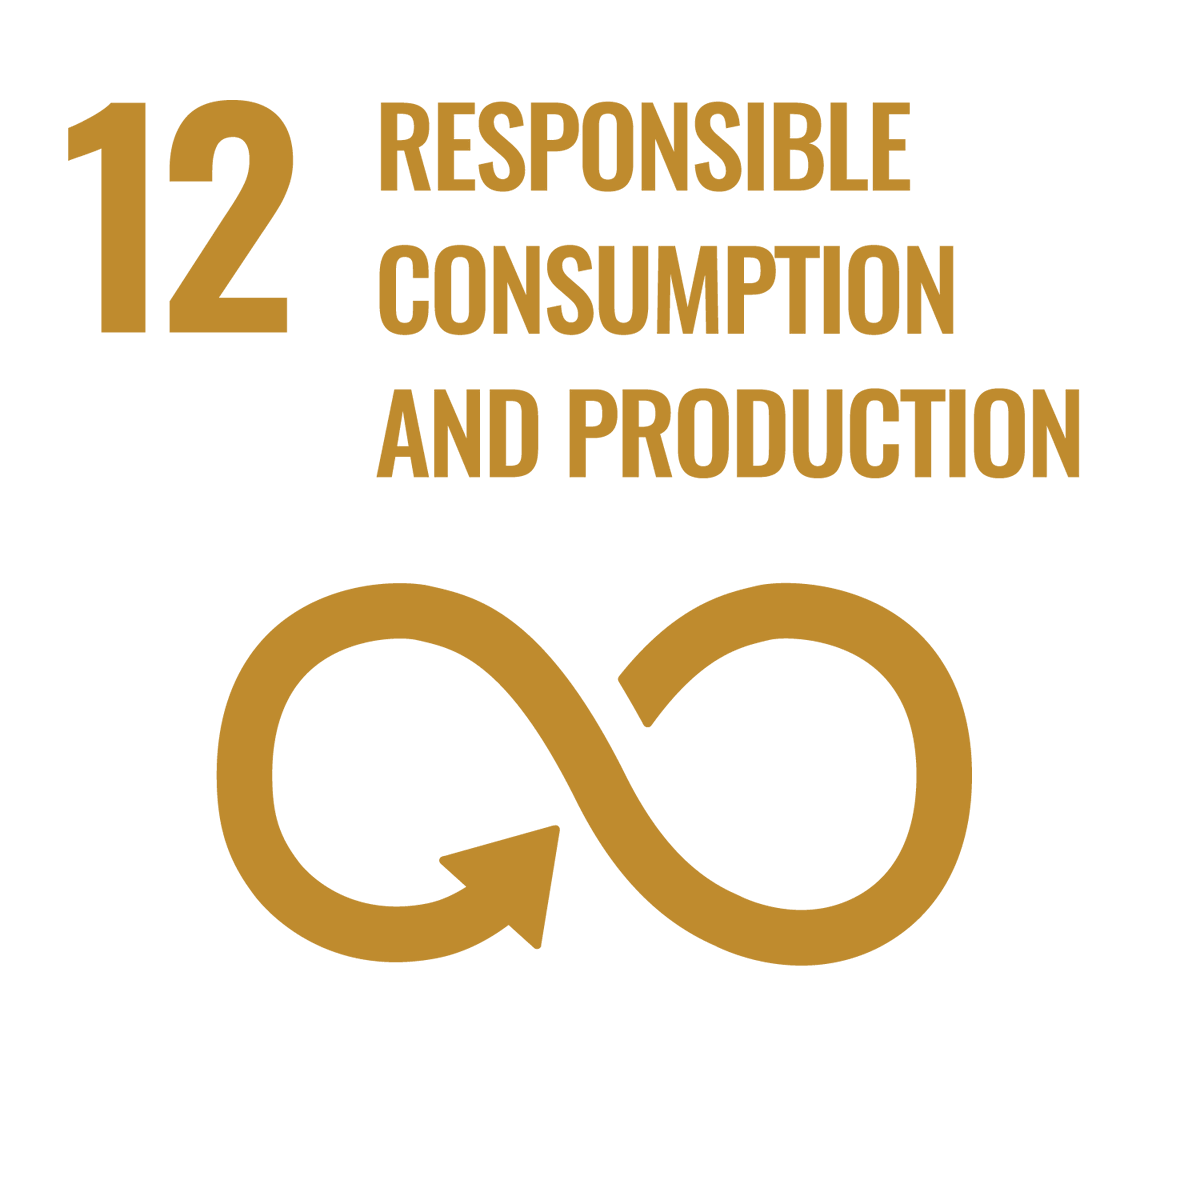 #DYK? Every year, one third of all food produced is wasted, yet food security continues to be a growing global concern, affecting millions of people. In August, we focus on Goal 12 - our guide to a less wasteful and more sustainable future. bit.ly/SDGinFocus #GlobalGoals